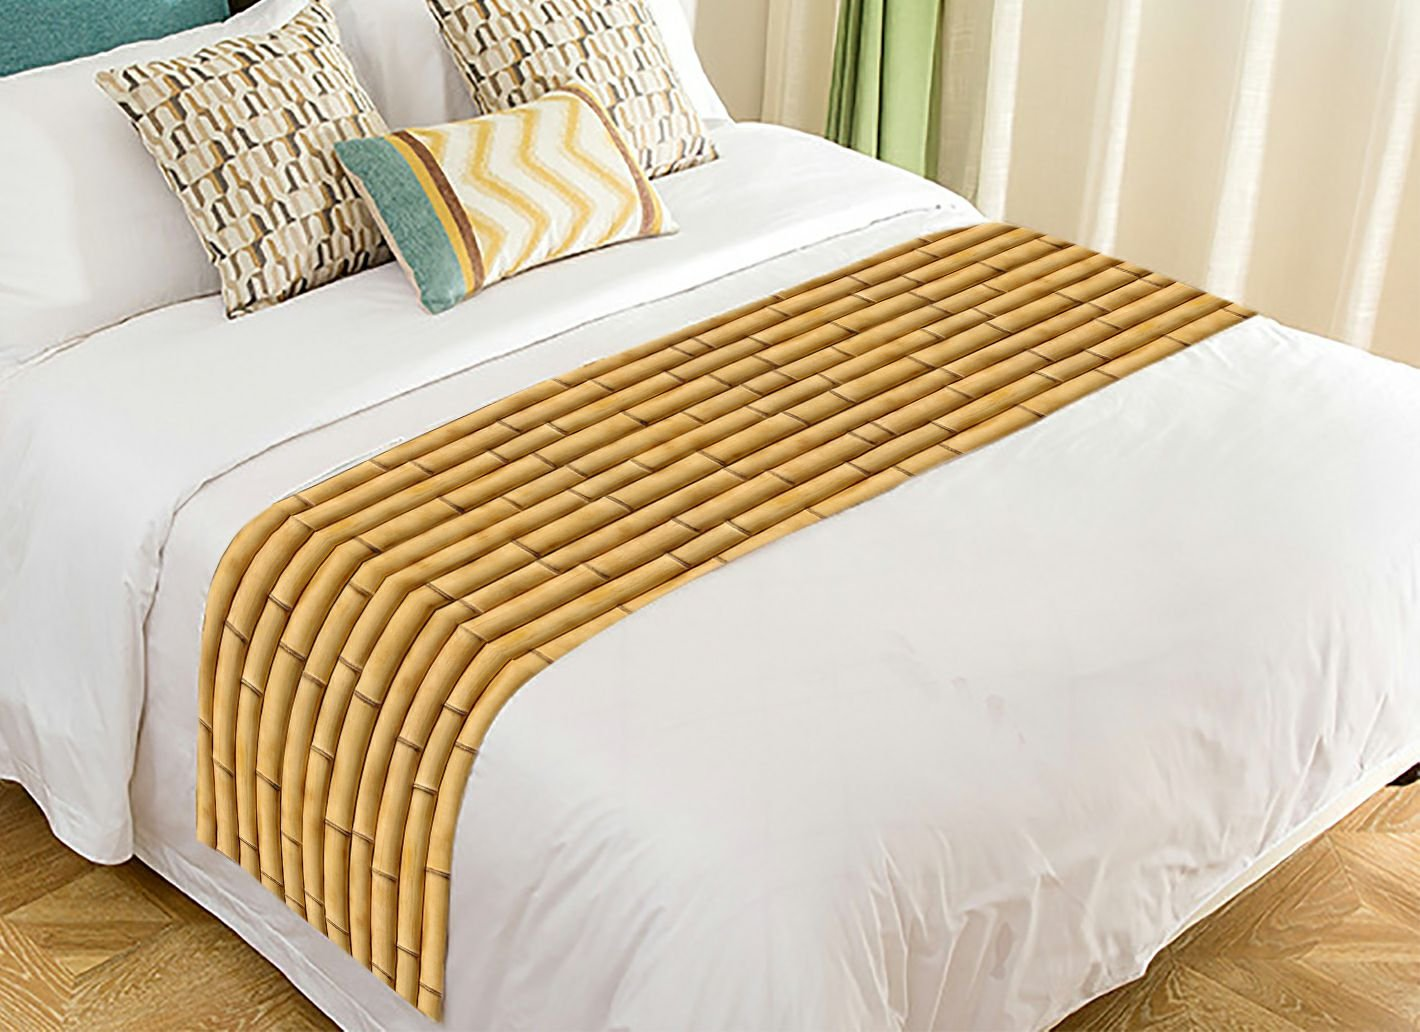 Custom Nature Bamboo Wall Bed Runner Cotton Bedding Scarf Bedding Decor 20x95 inches